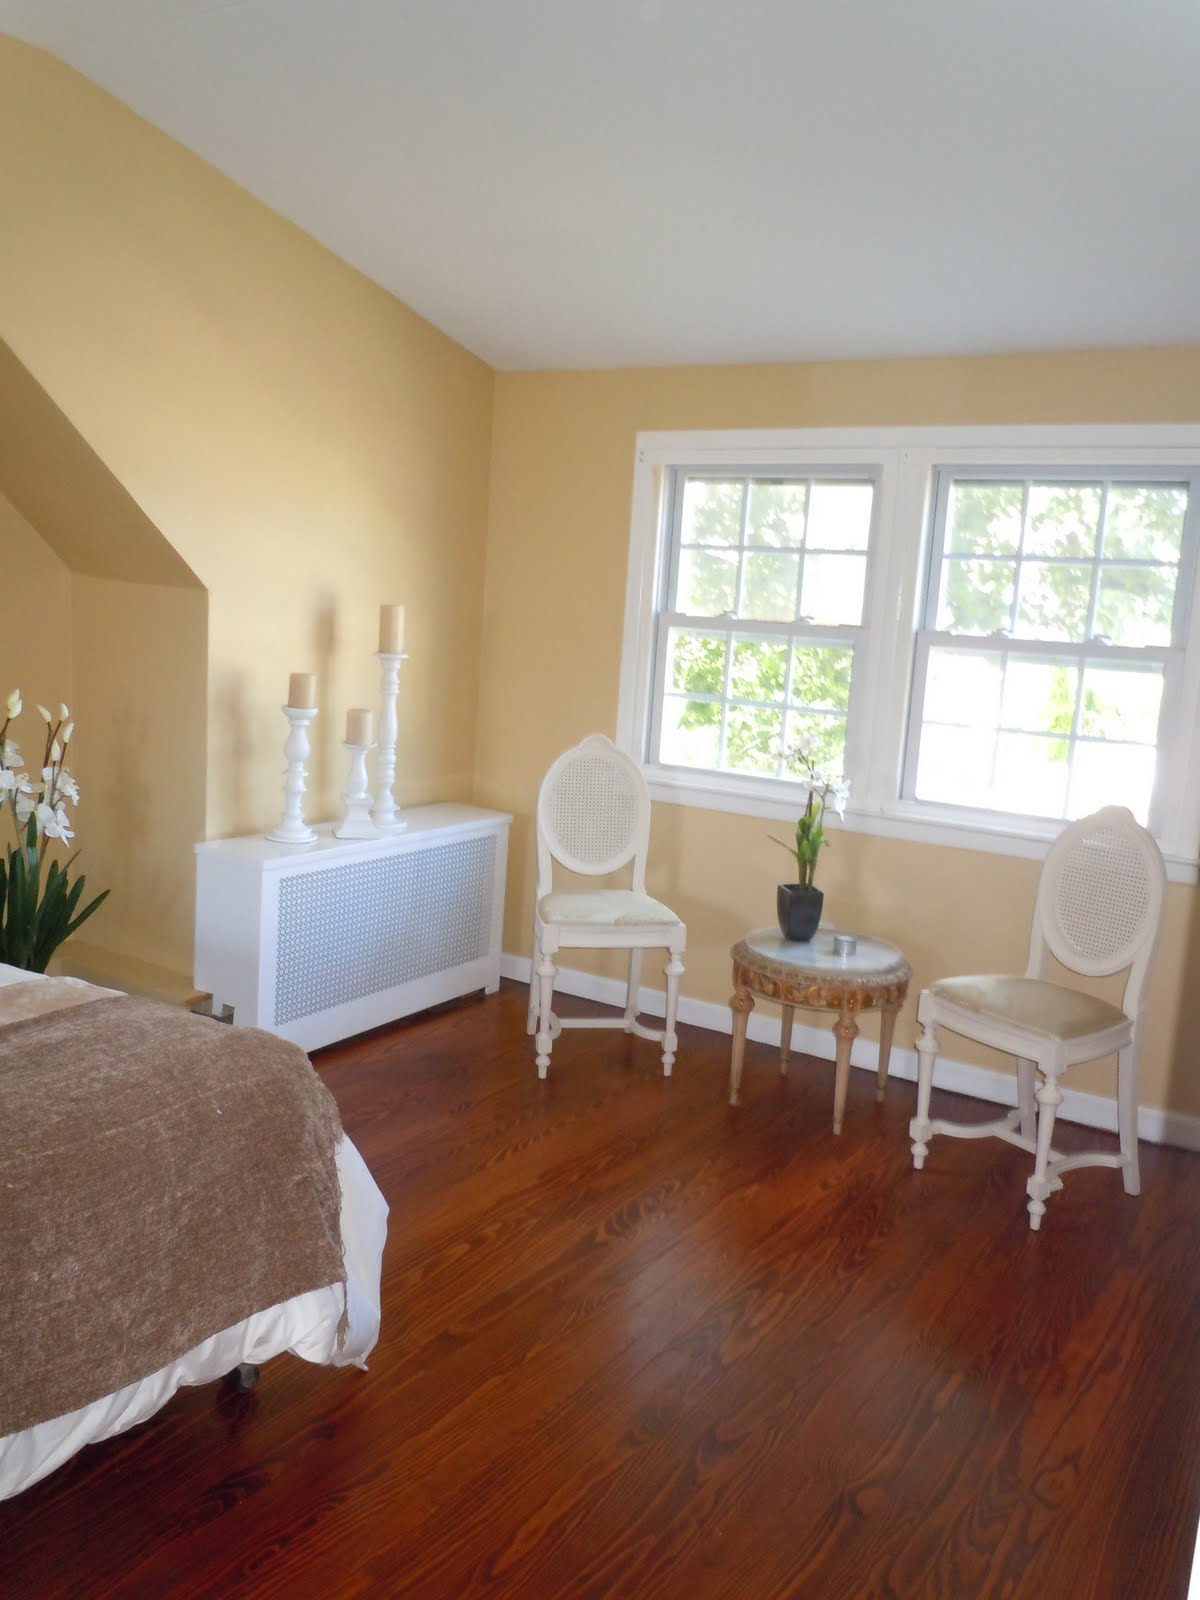 Beautiful staged homes another renovated home for sale in - 2 master bedroom houses for sale ...